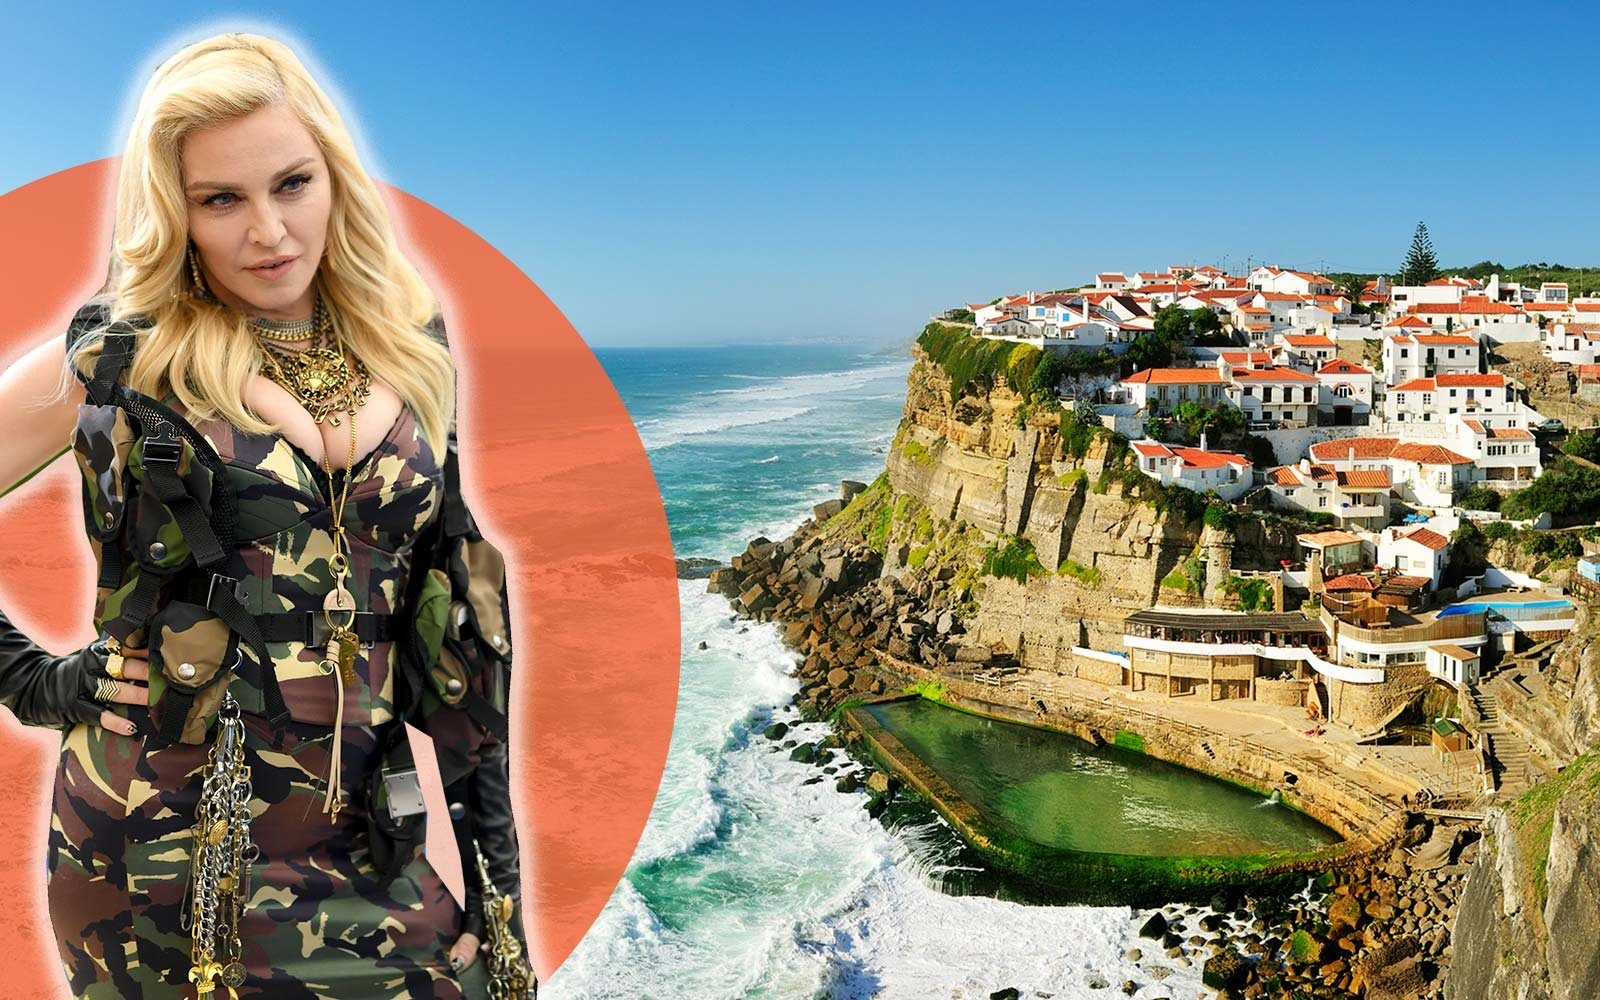 Feeding pigs and fretting over FedEx — Madonna in Portugal